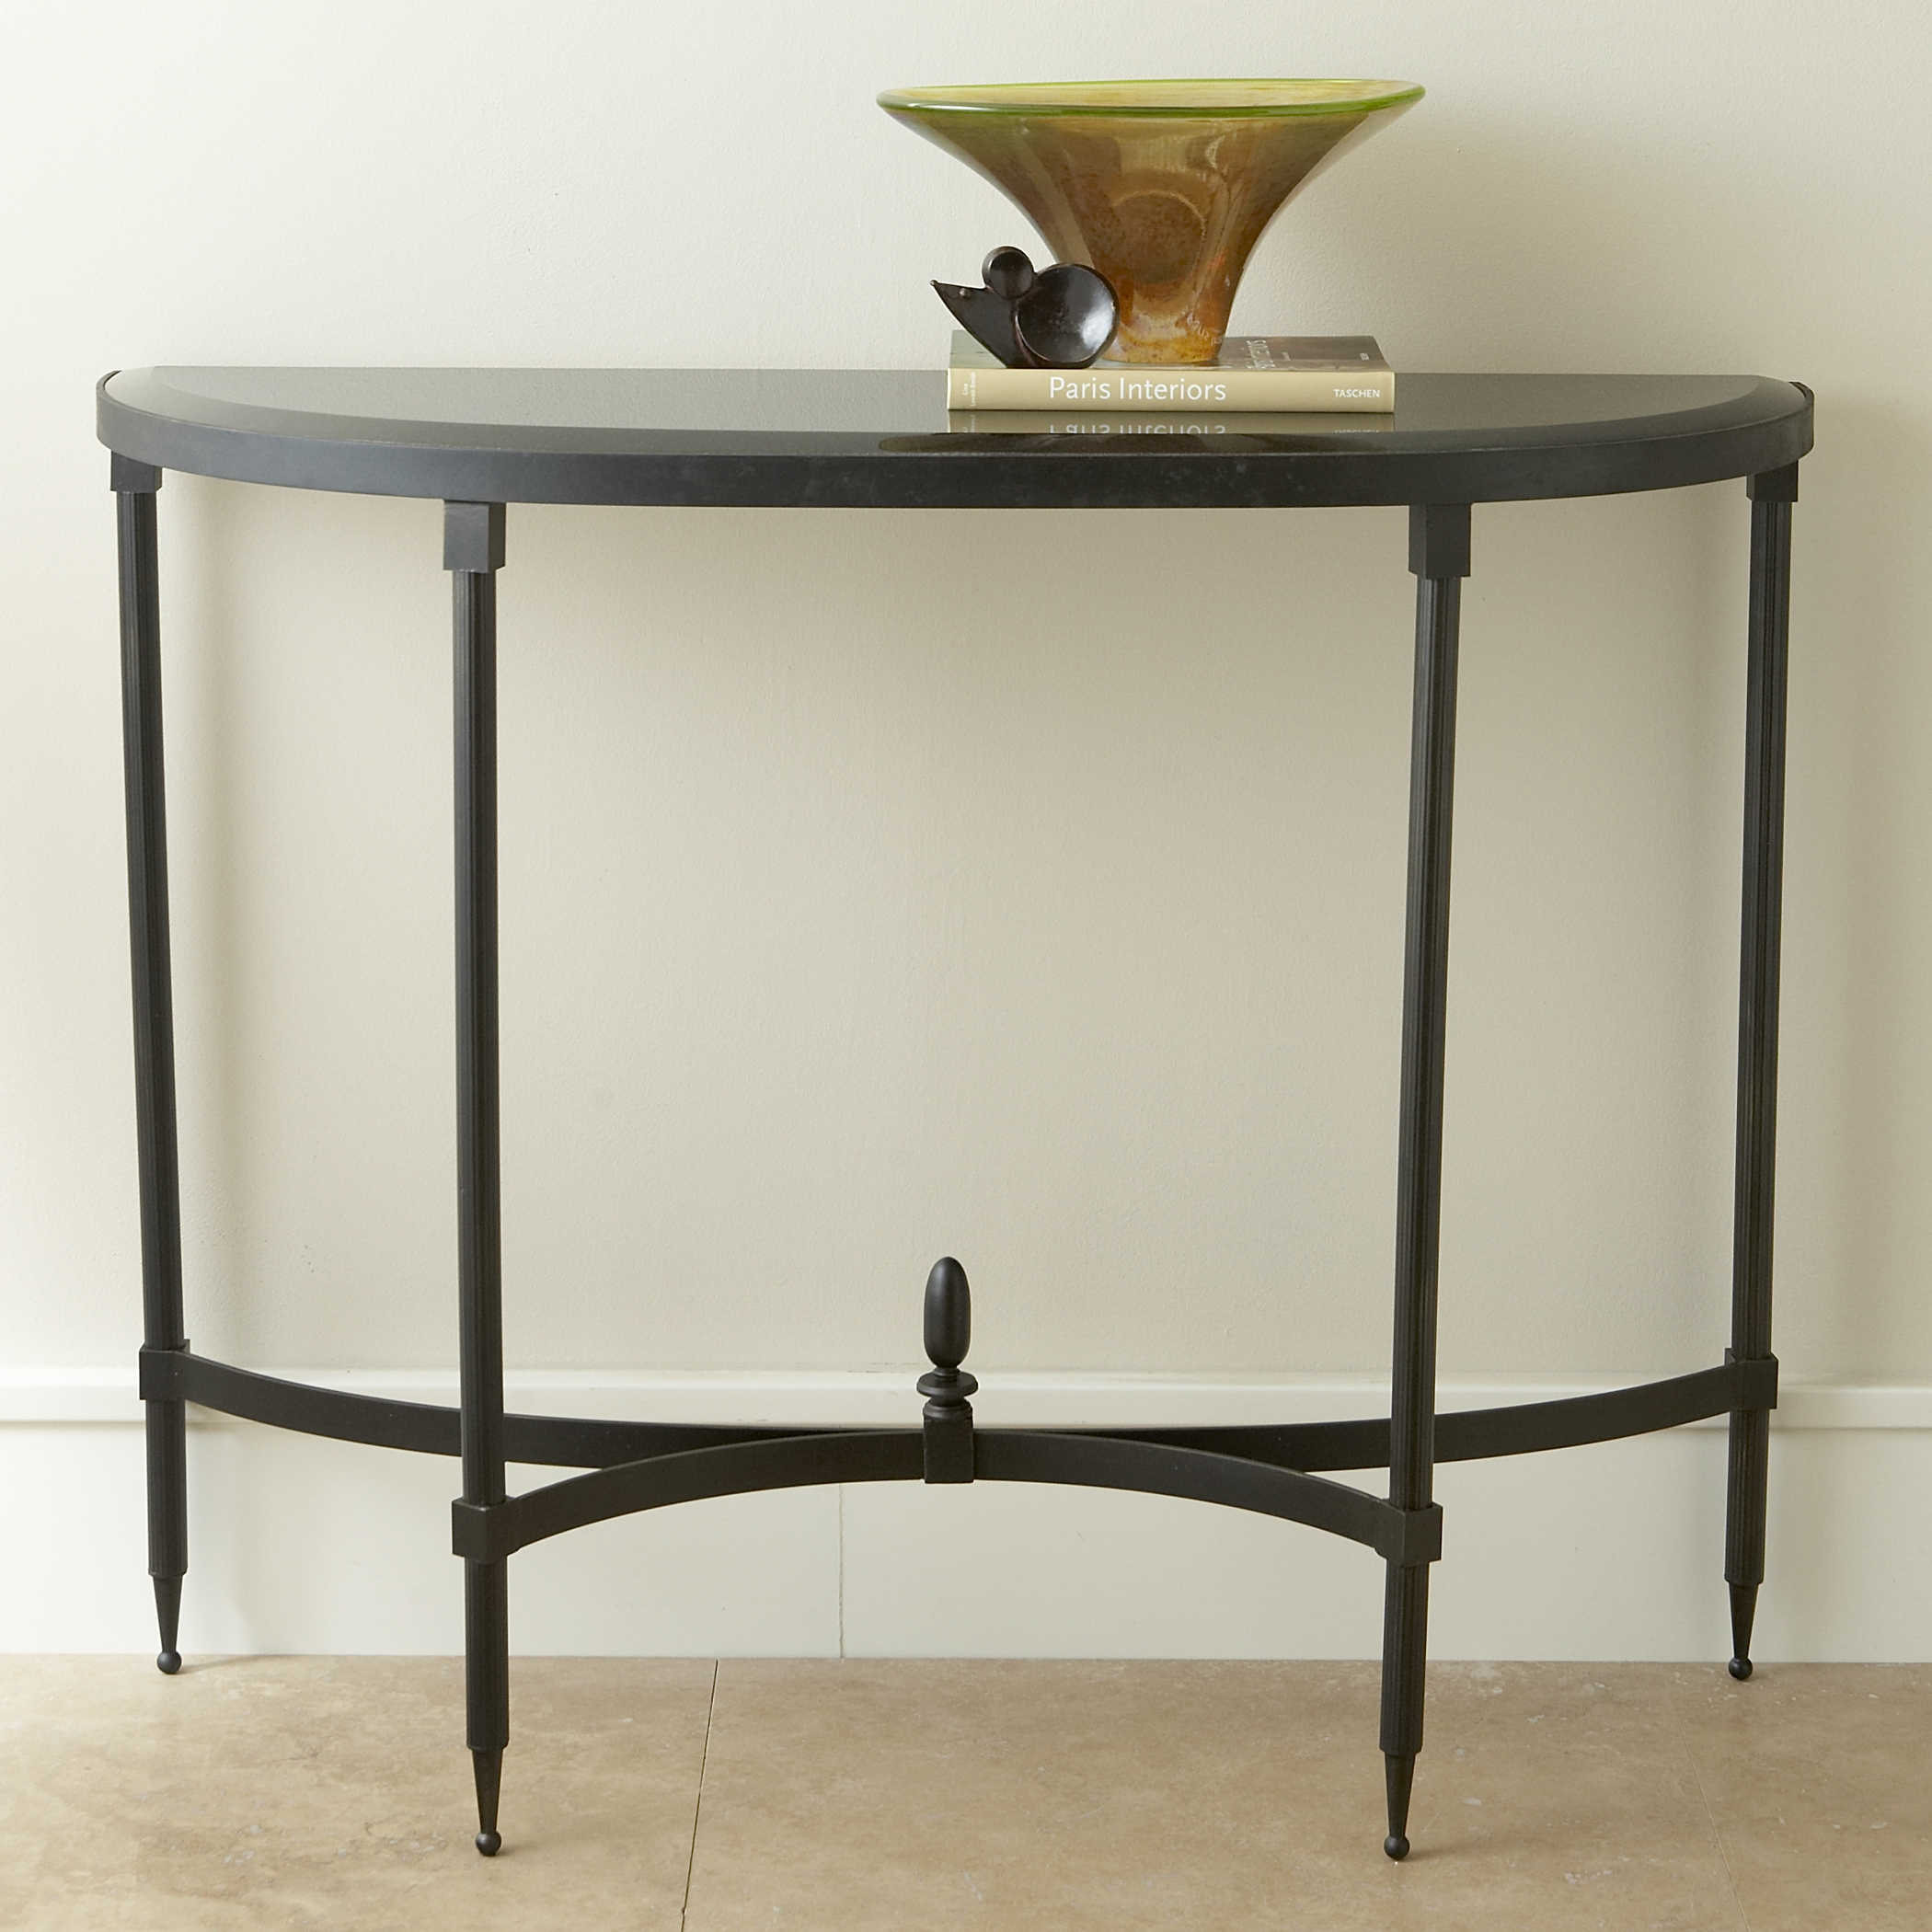 Global Views Fluted Iron Collection Bronze with Granite 42\'\' x 13.75\'\'  Demilune Console Table